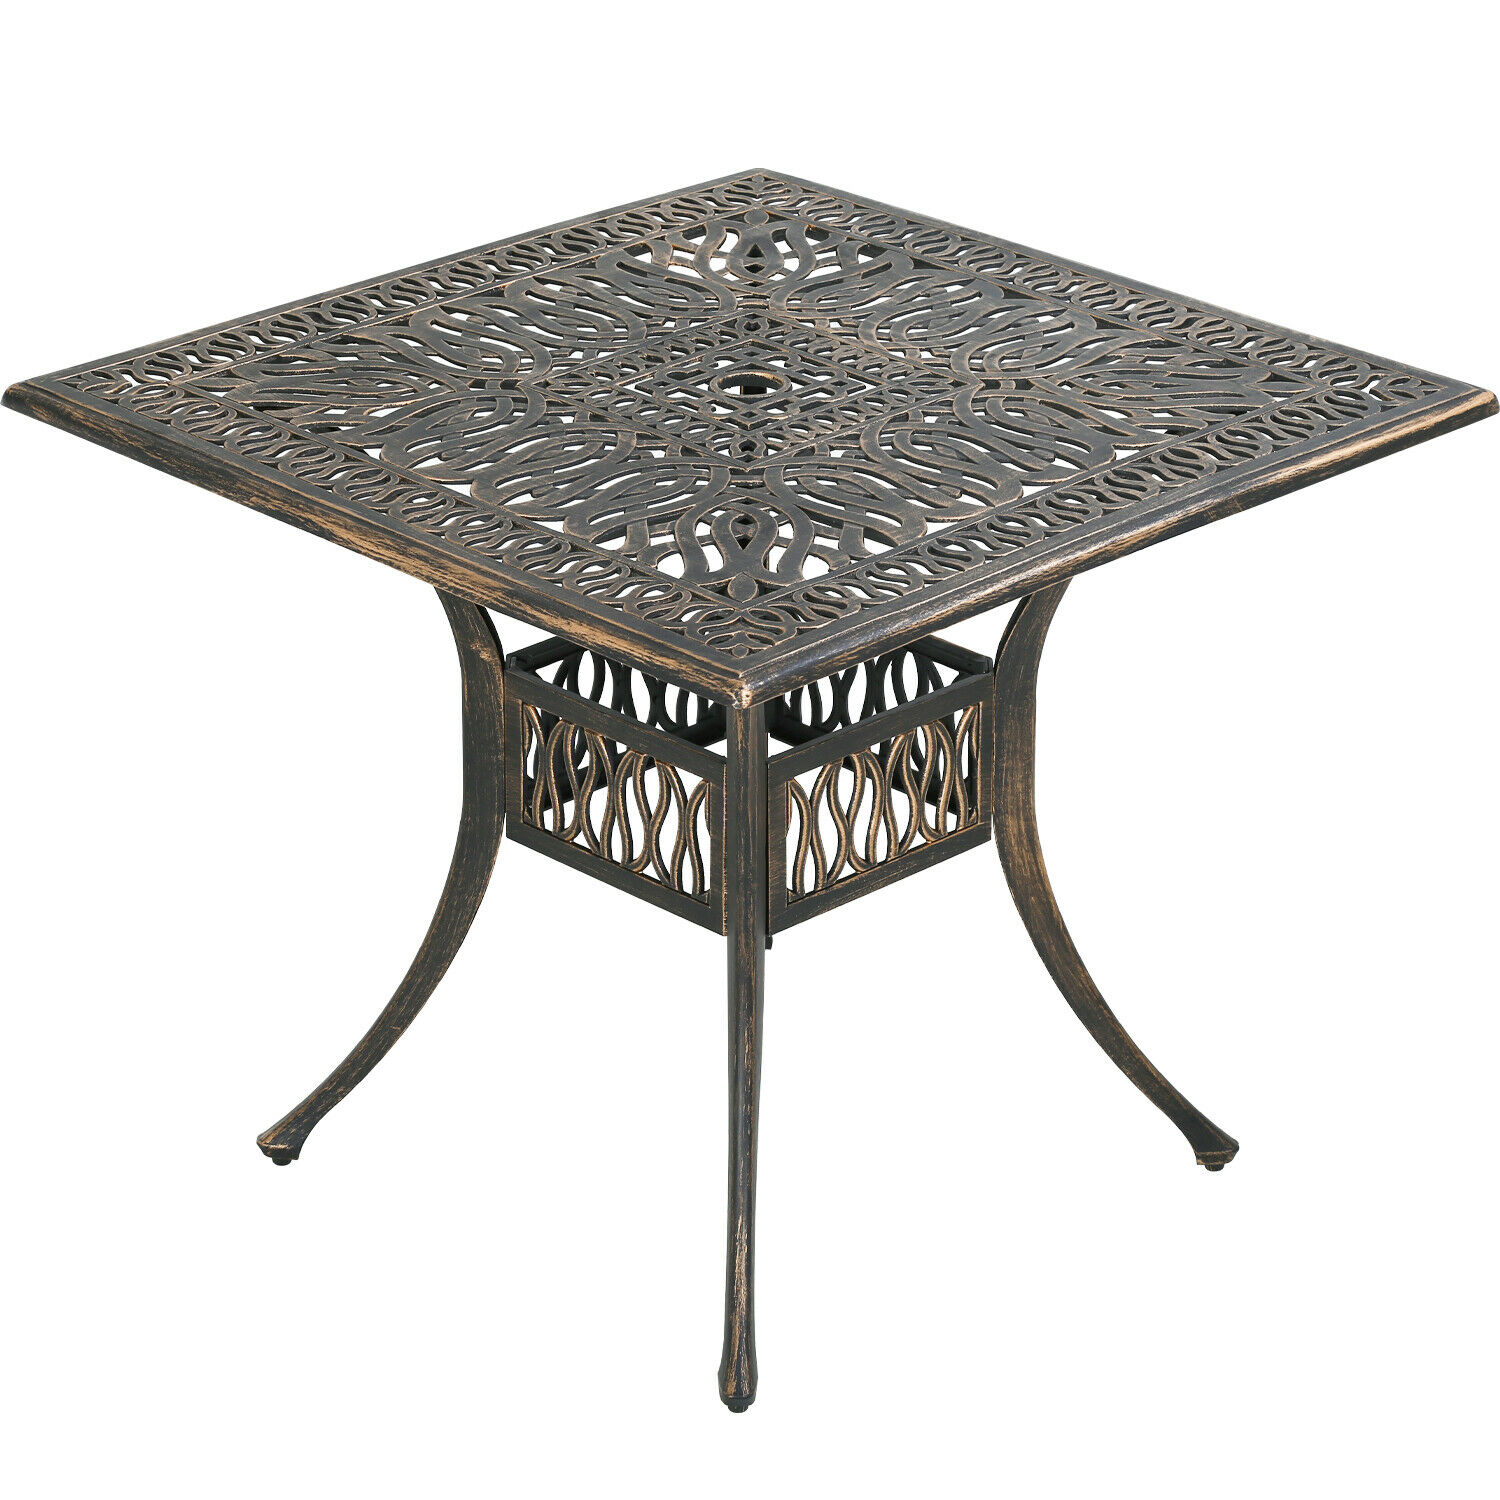 patio dining table outdoor dining table wrought iron patio furniture patio walmart com